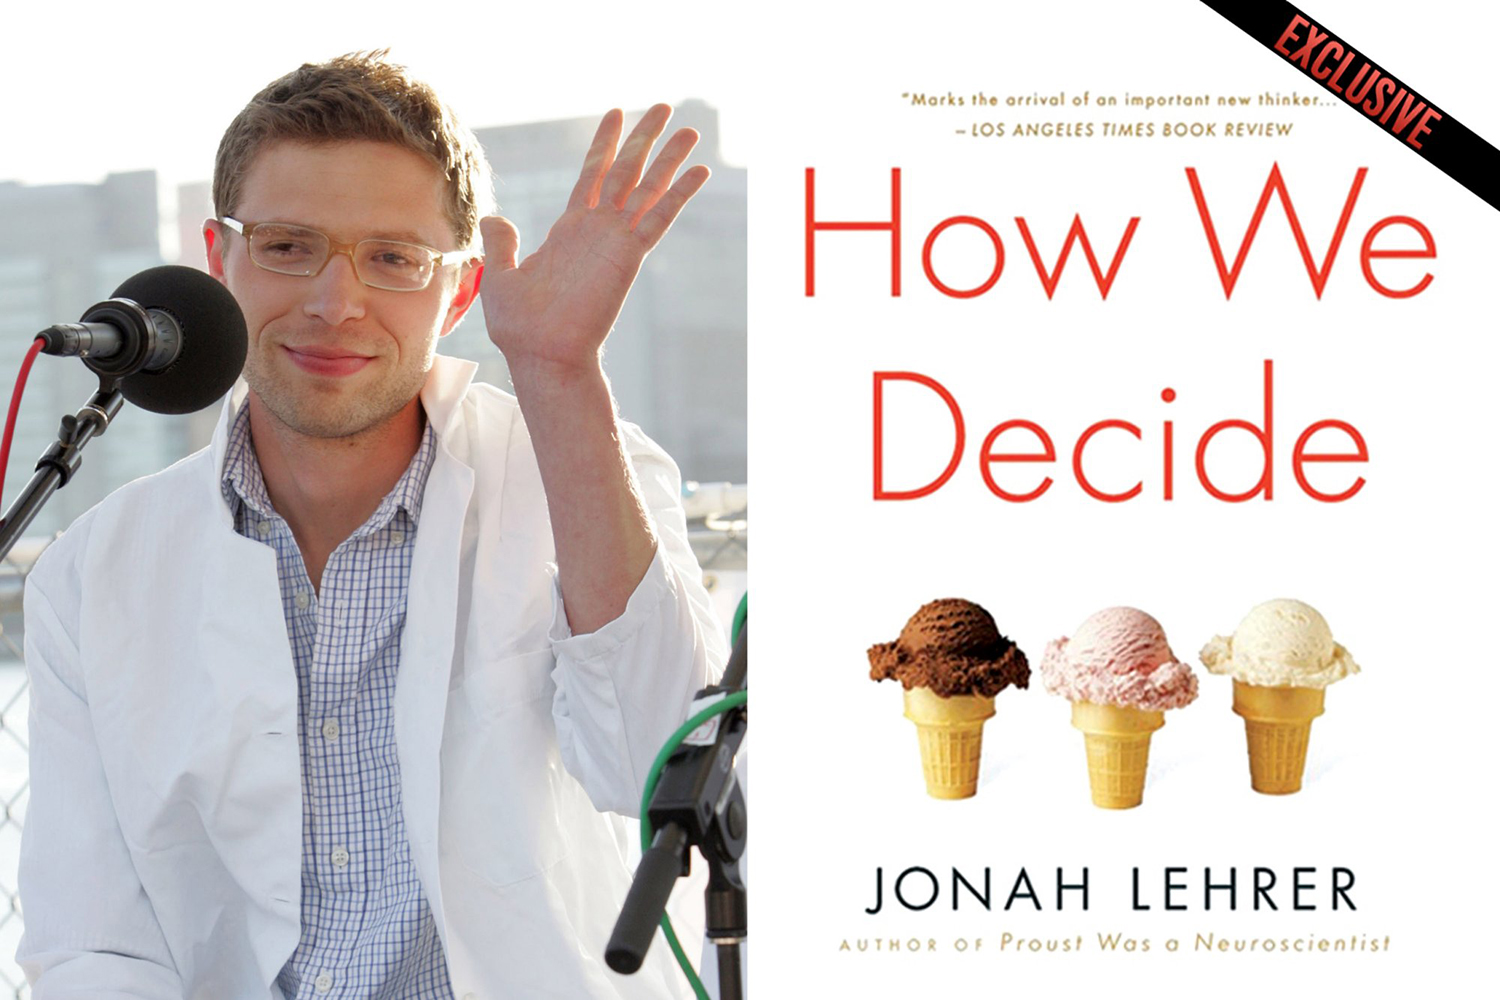 lehrer-jonah-how-we-decide